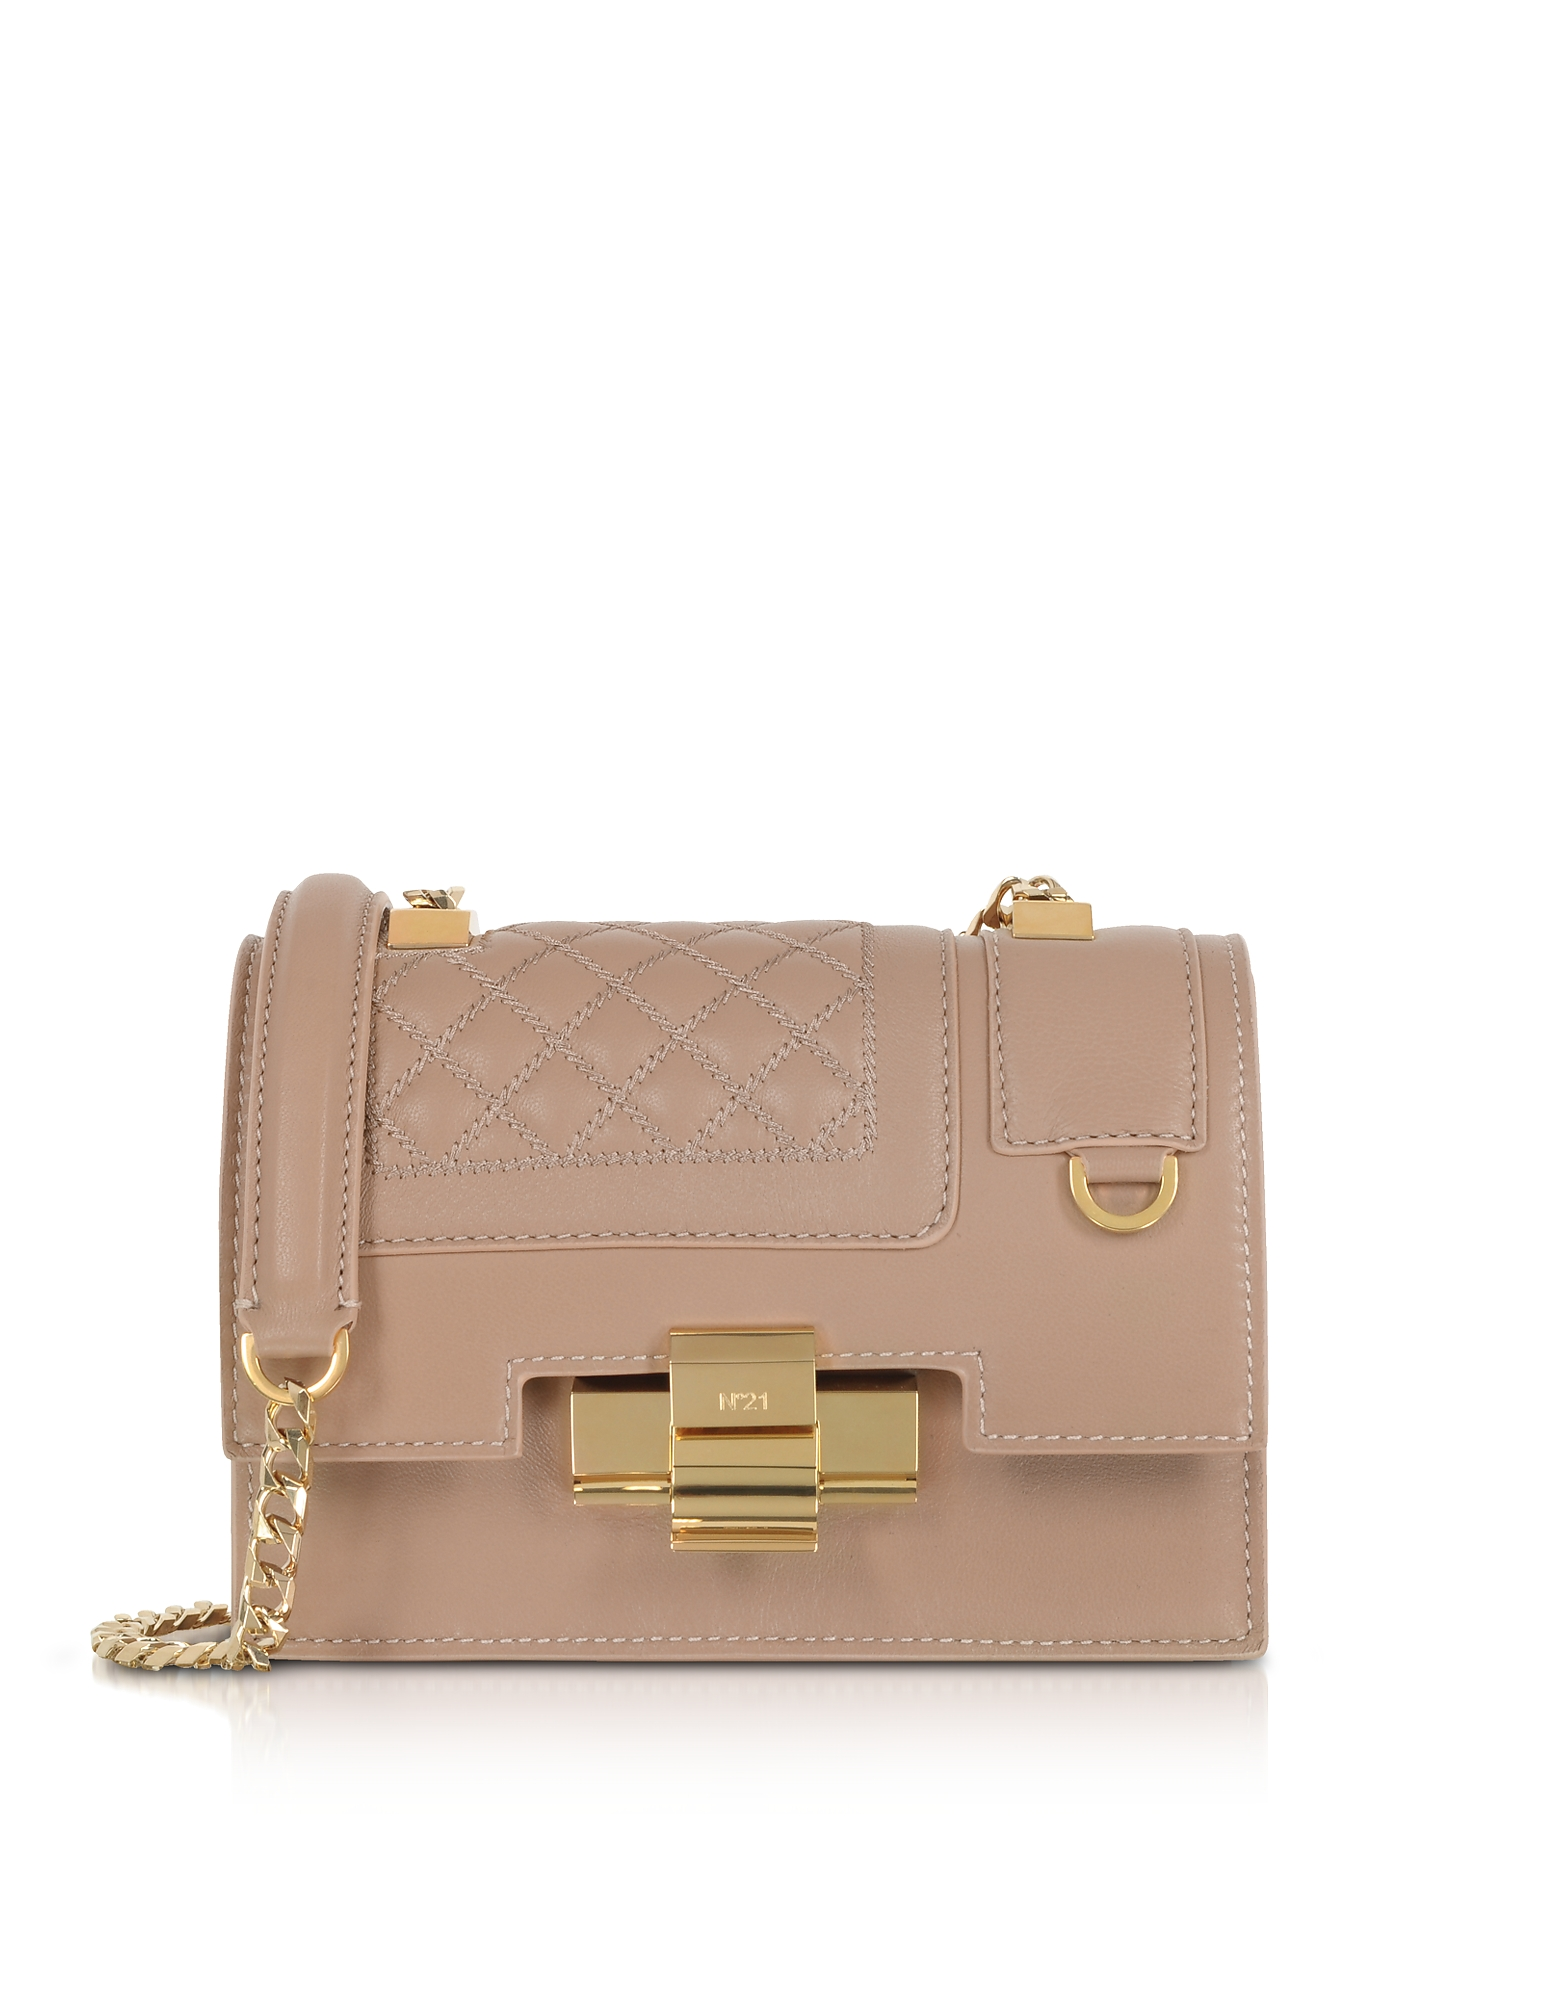 N°21 Handbags, Powder Pink Quilted Leather Mini Alice Shoulder Bag